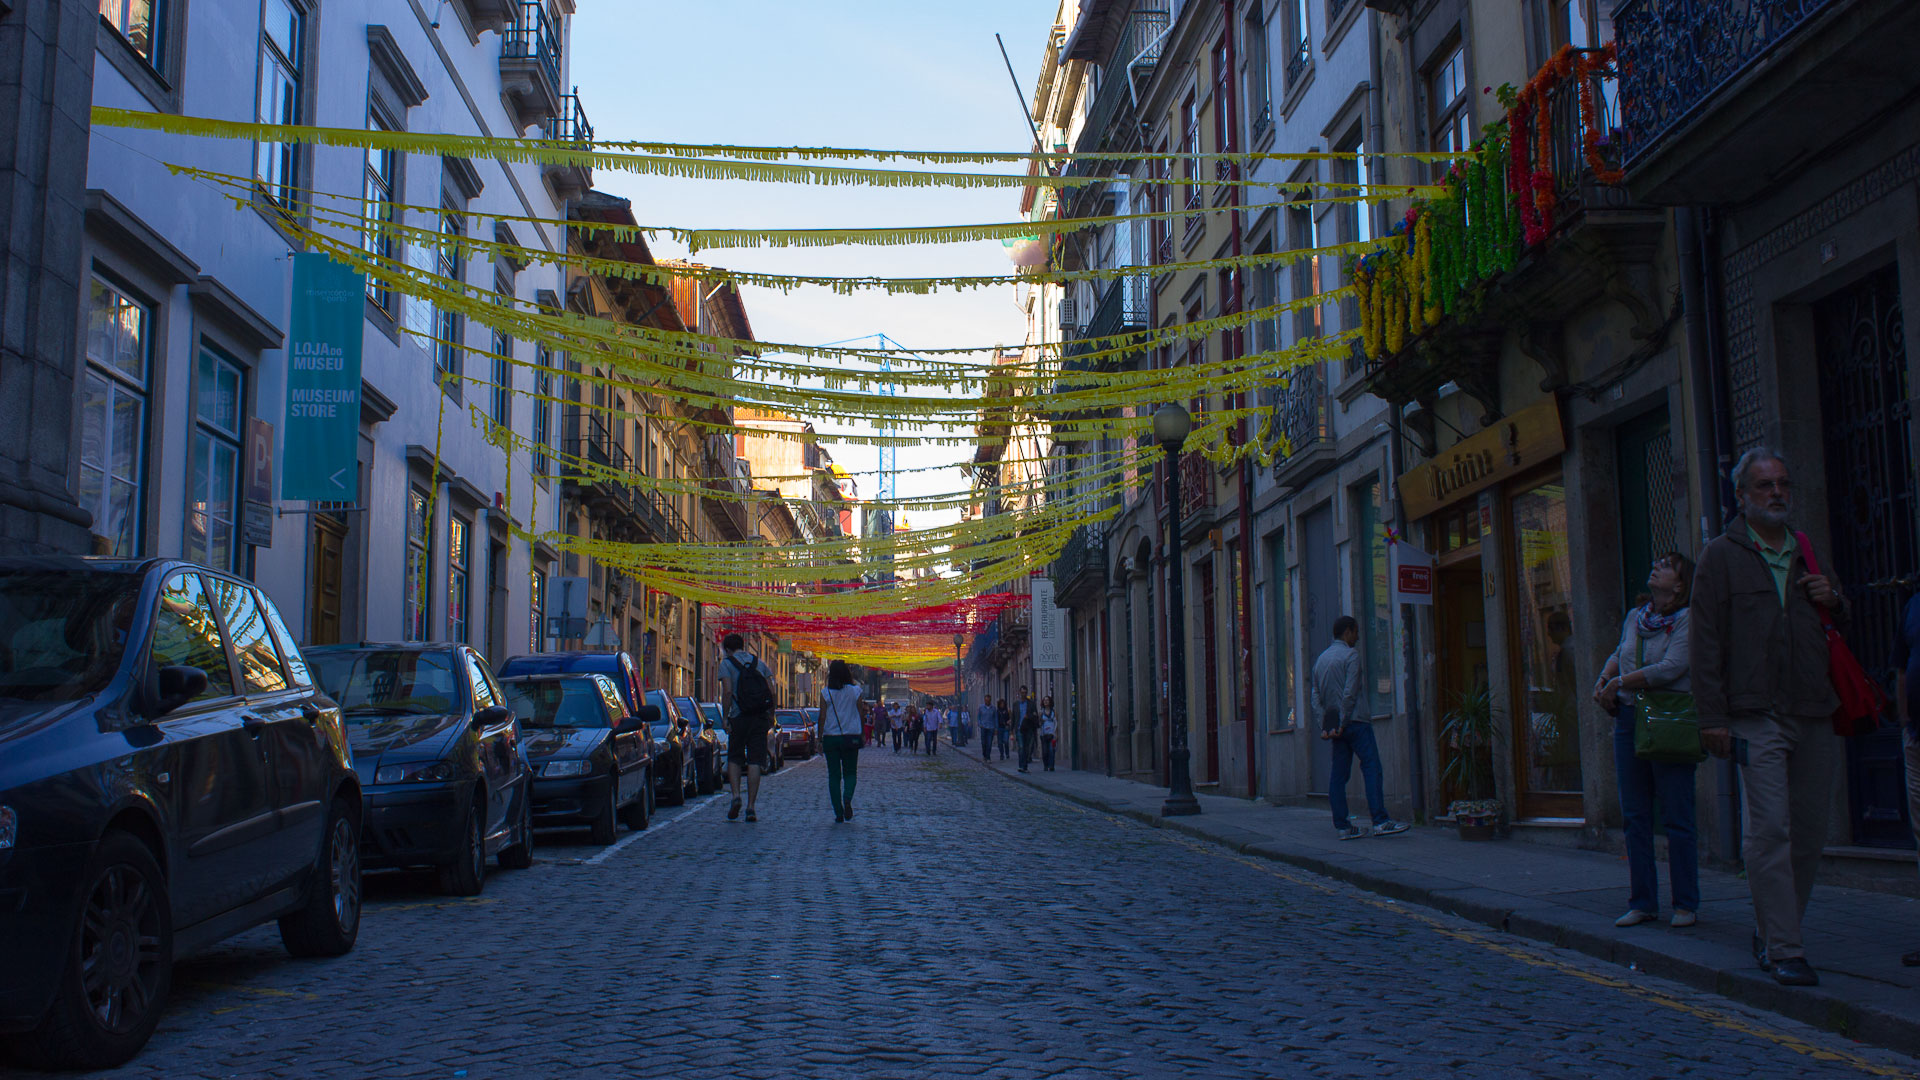 Getting ready for the St John's Eve in Porto